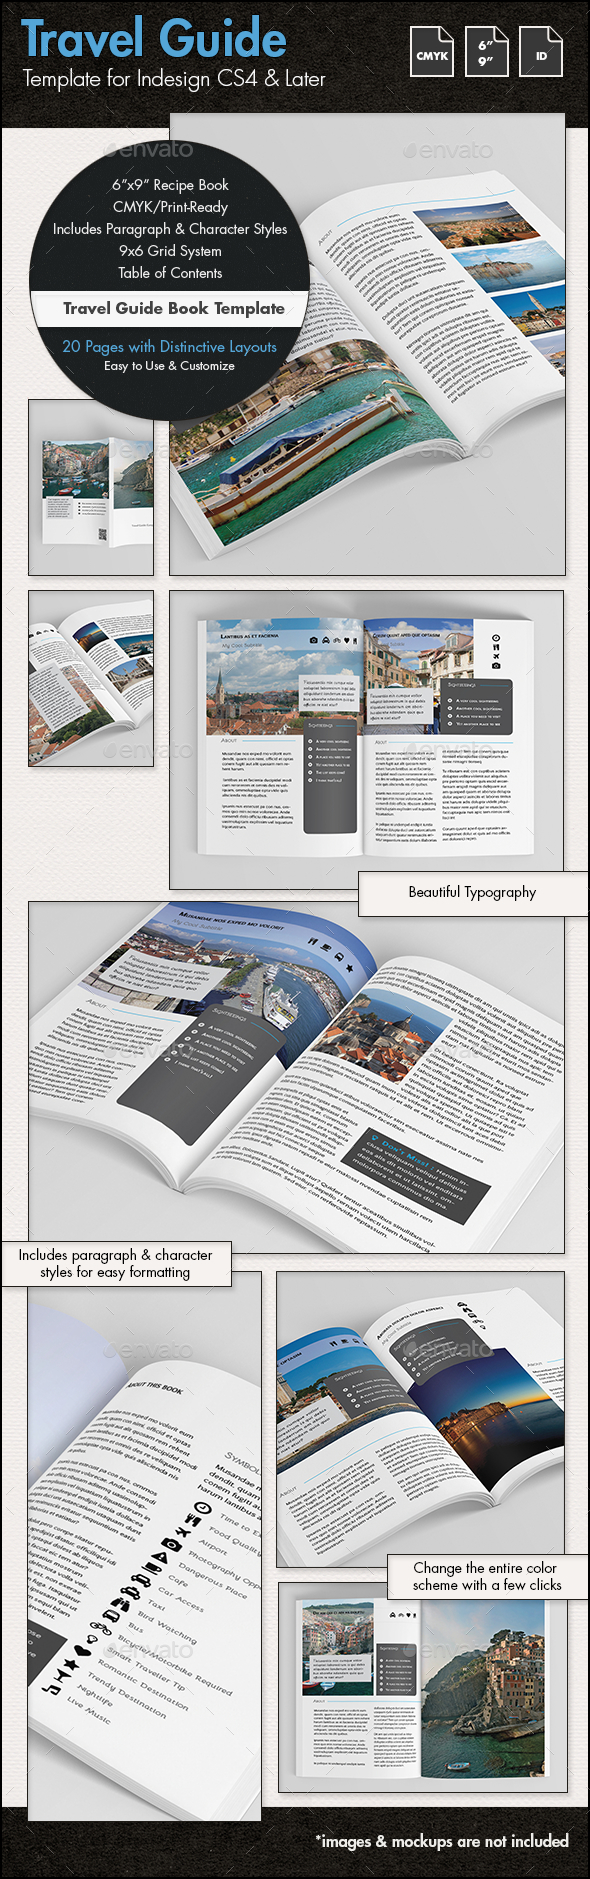 Travel Guide Template - 6x9in - Catalogs Brochures